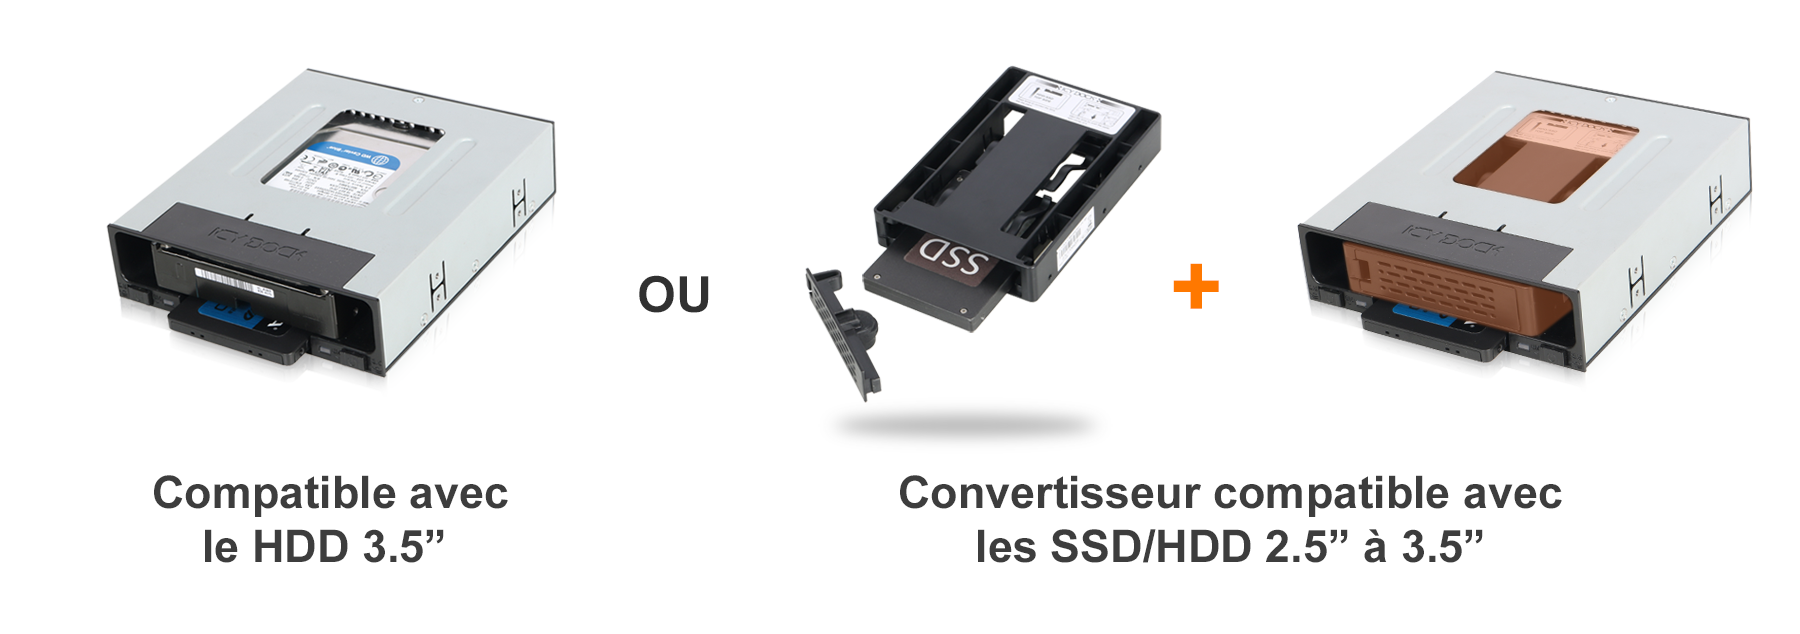 Photo du convertisseur optionnel de SSD/HDD EZConvert MB882SP-3B